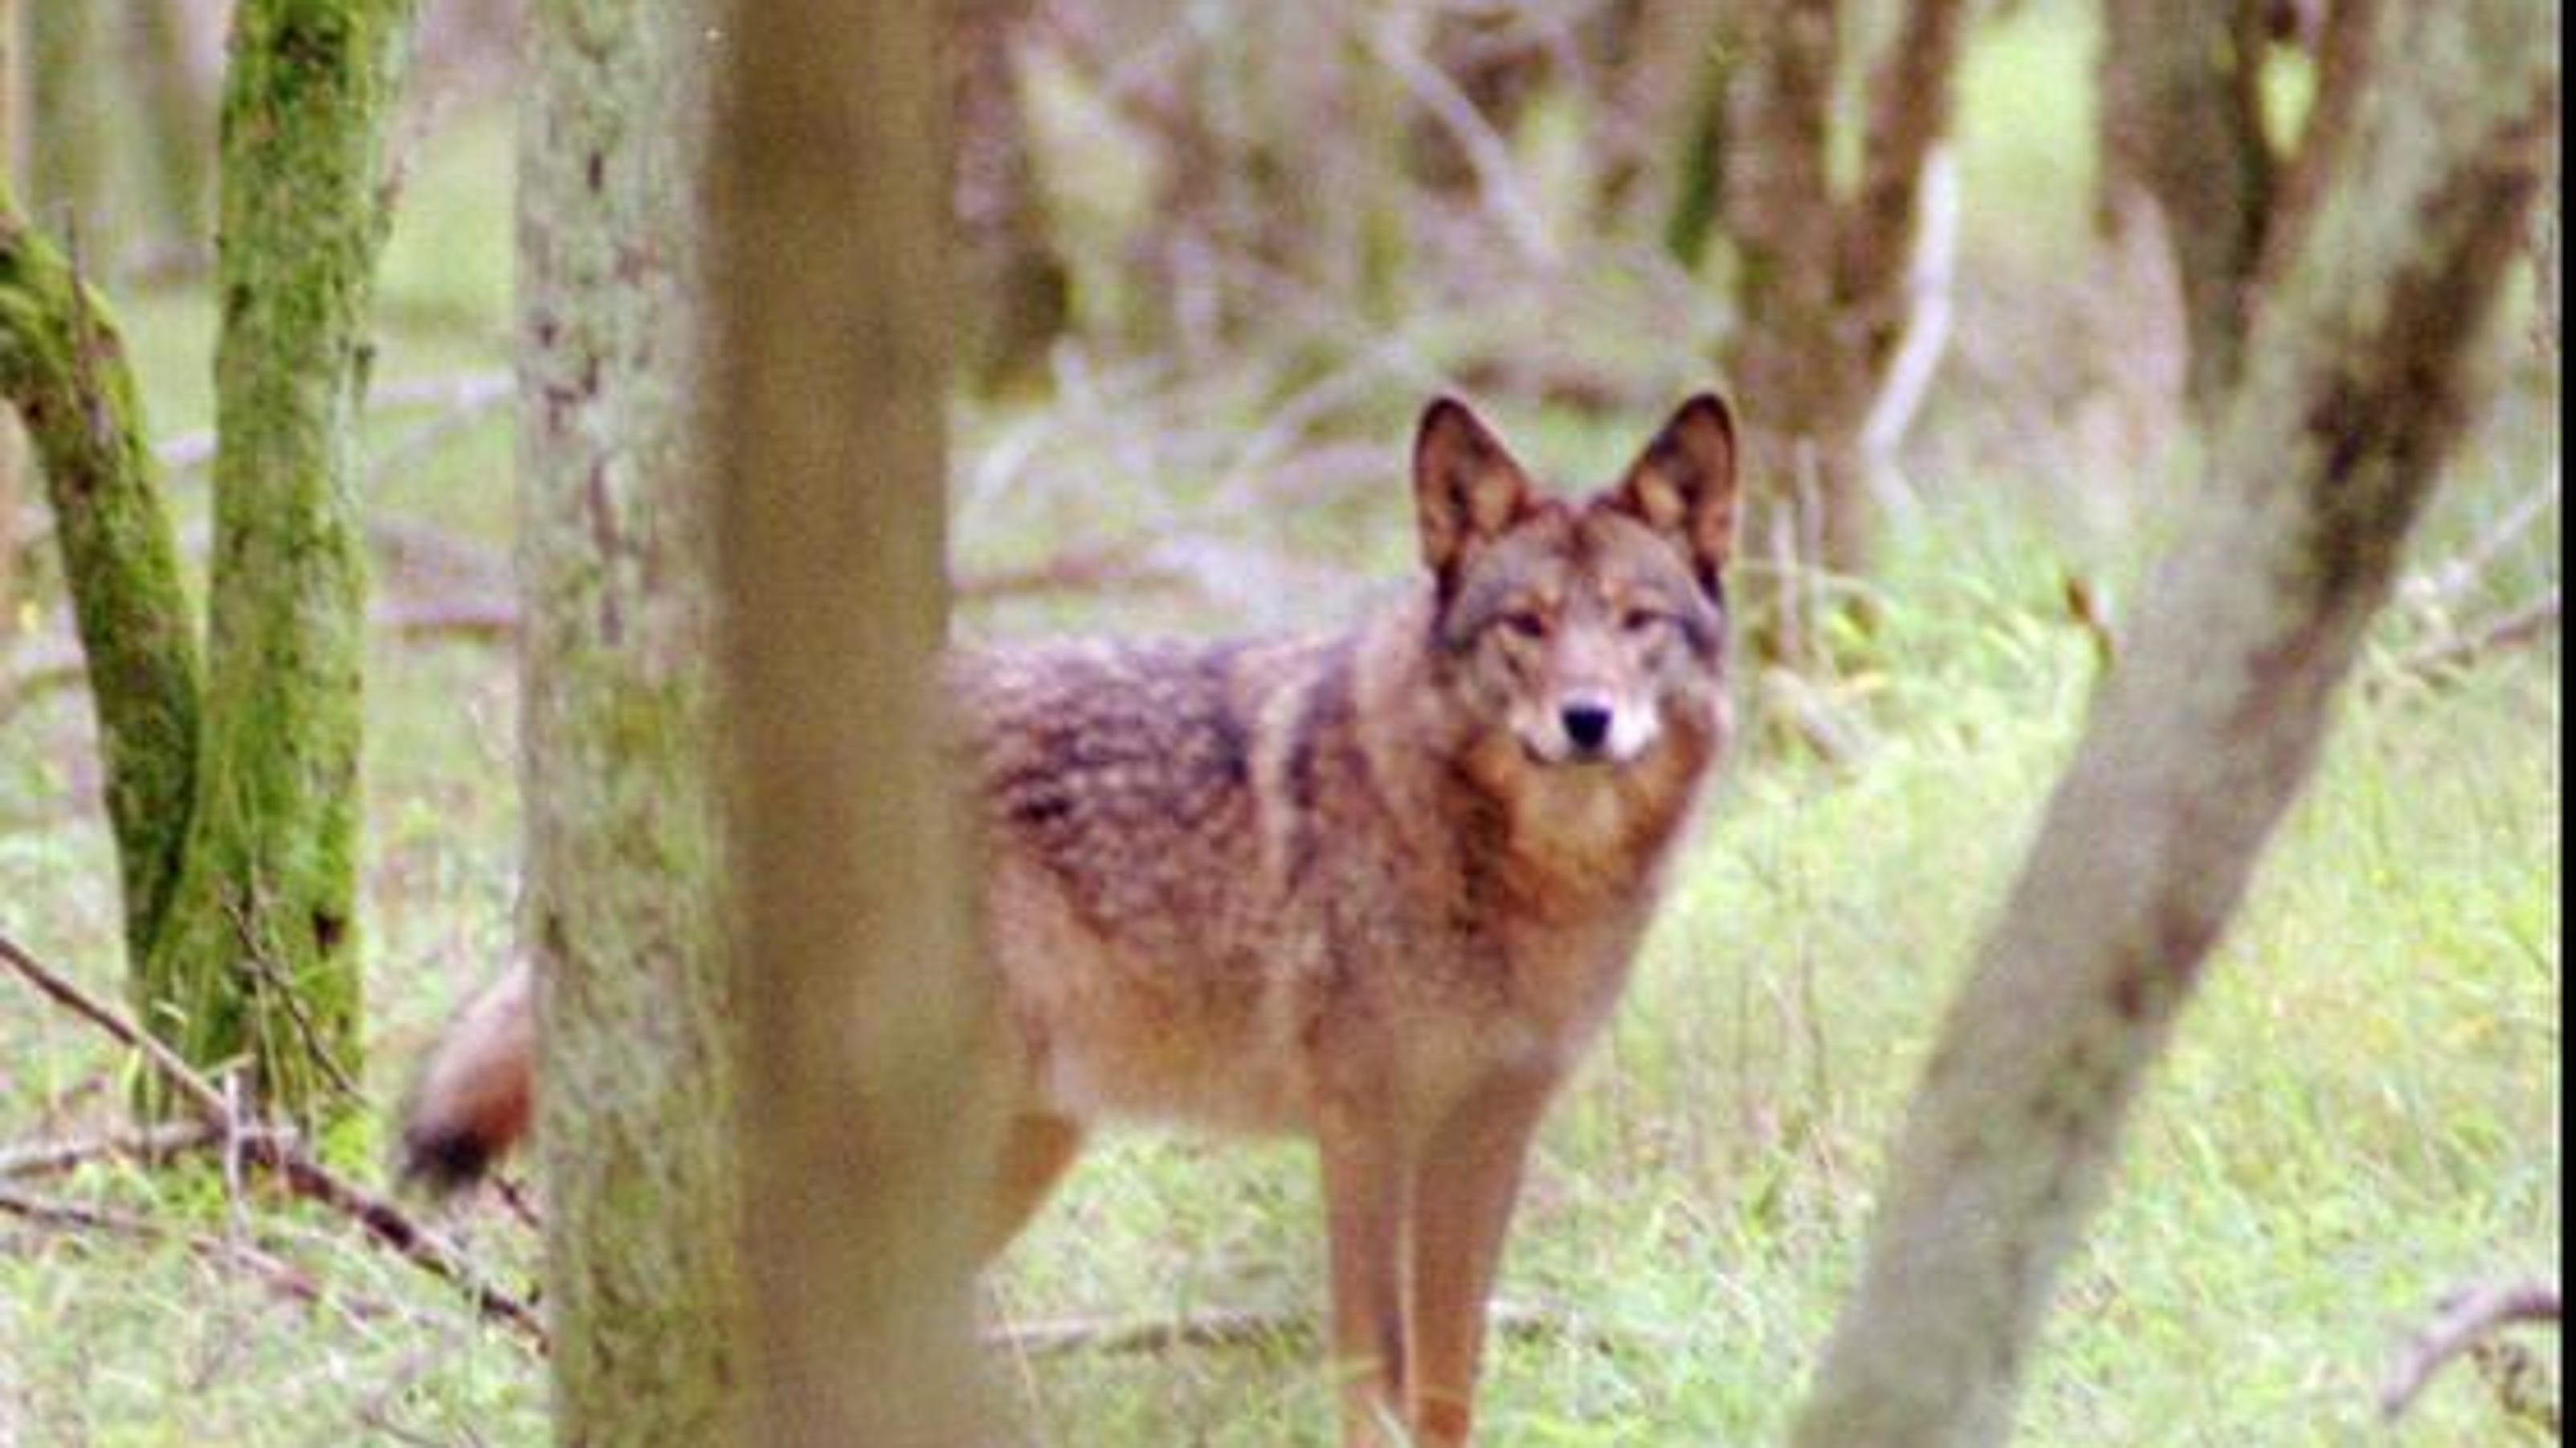 Coyote/wolf hybrid spotted at Savannah River